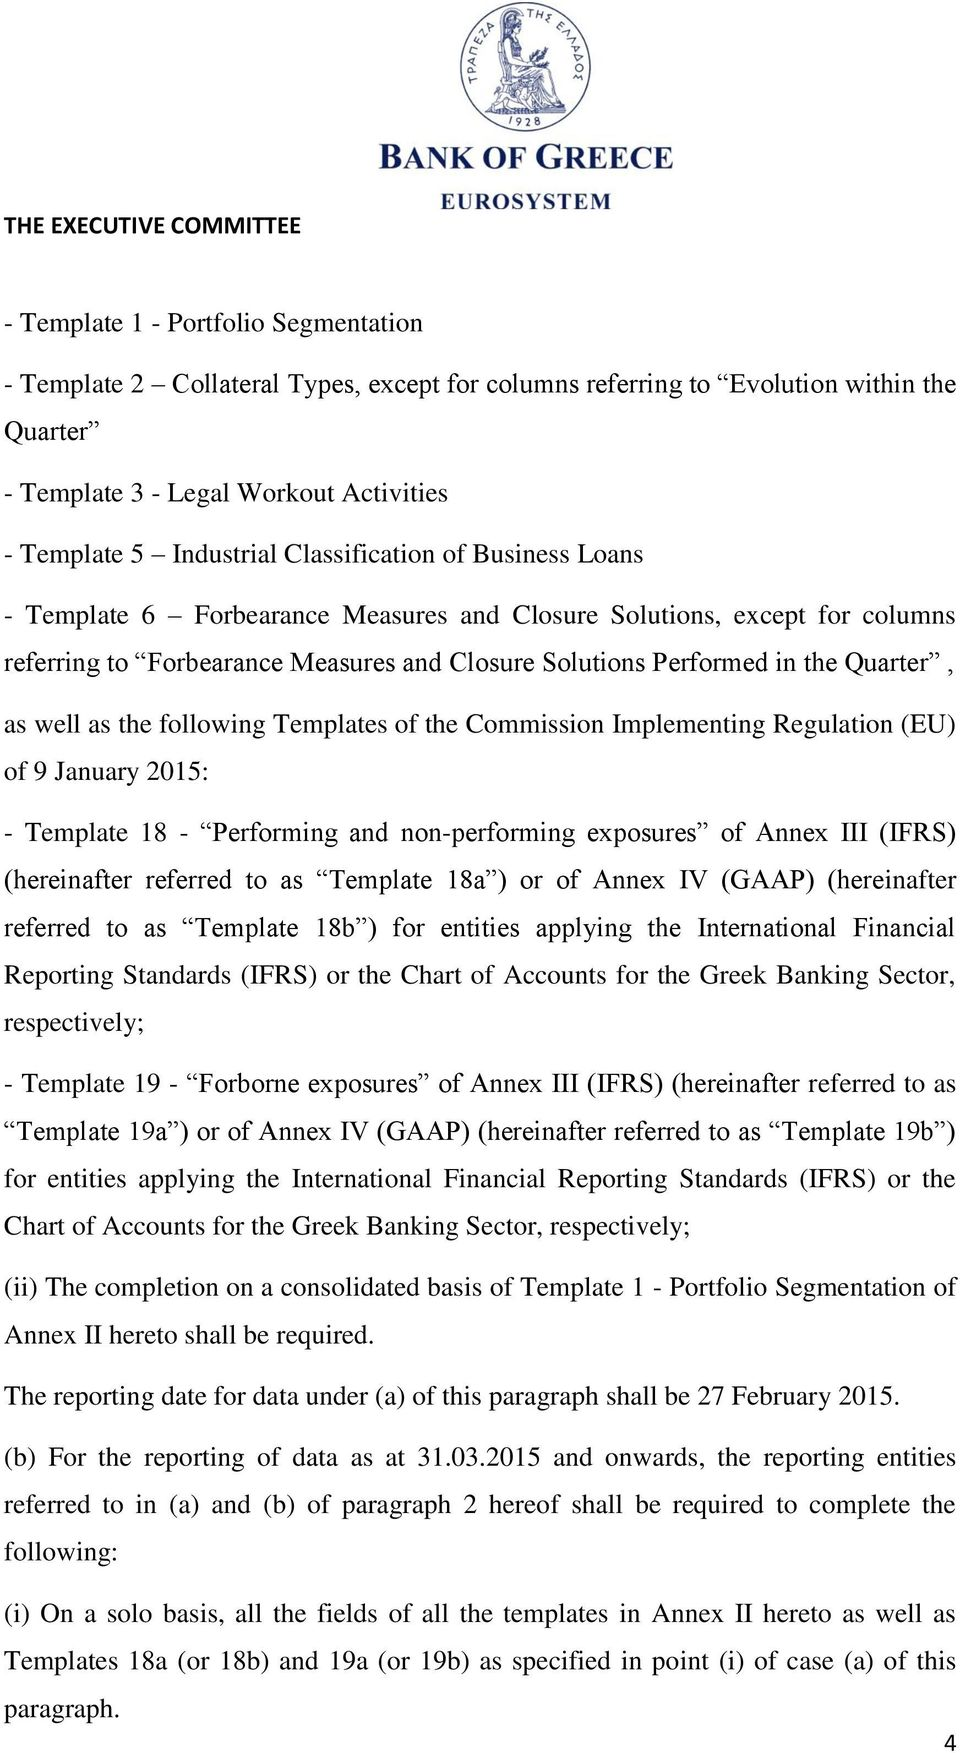 as the following Templates of the Commission Implementing Regulation (EU) of 9 January 2015: - Template 18 - Performing and non-performing exposures of Annex III (IFRS) (hereinafter referred to as